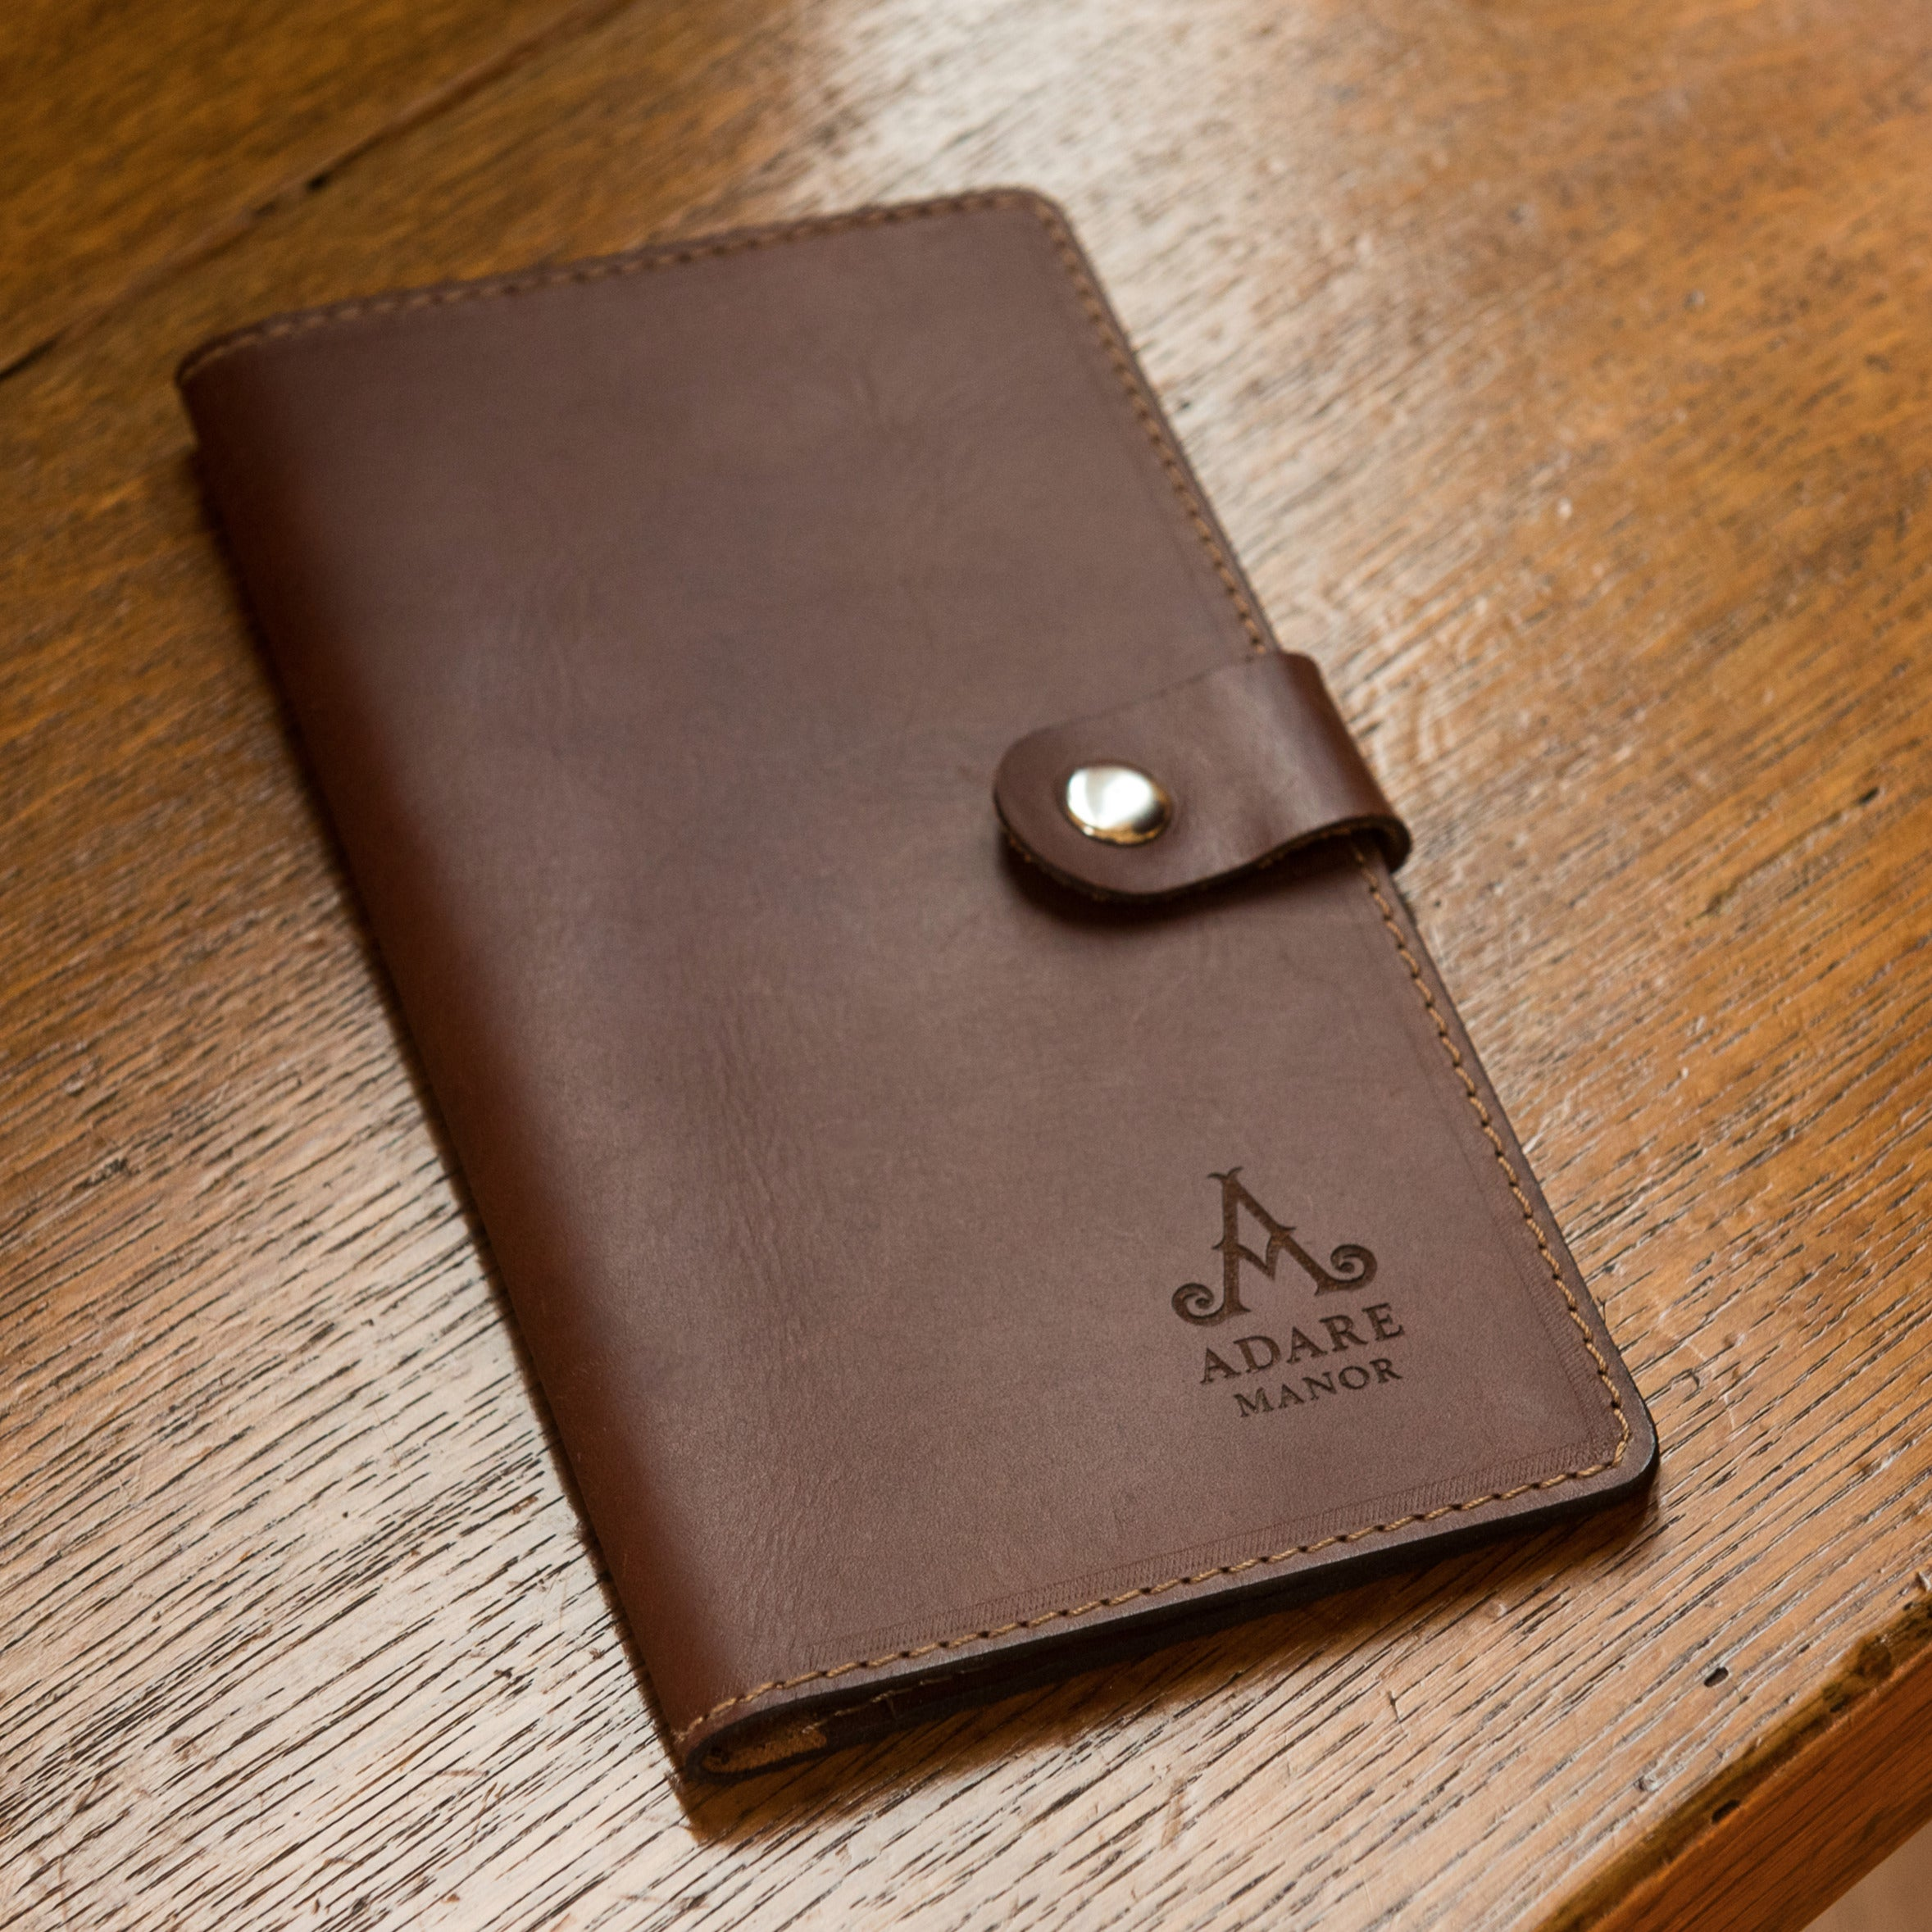 CarveOn Leather Adare Manor Branded Travel Wallet